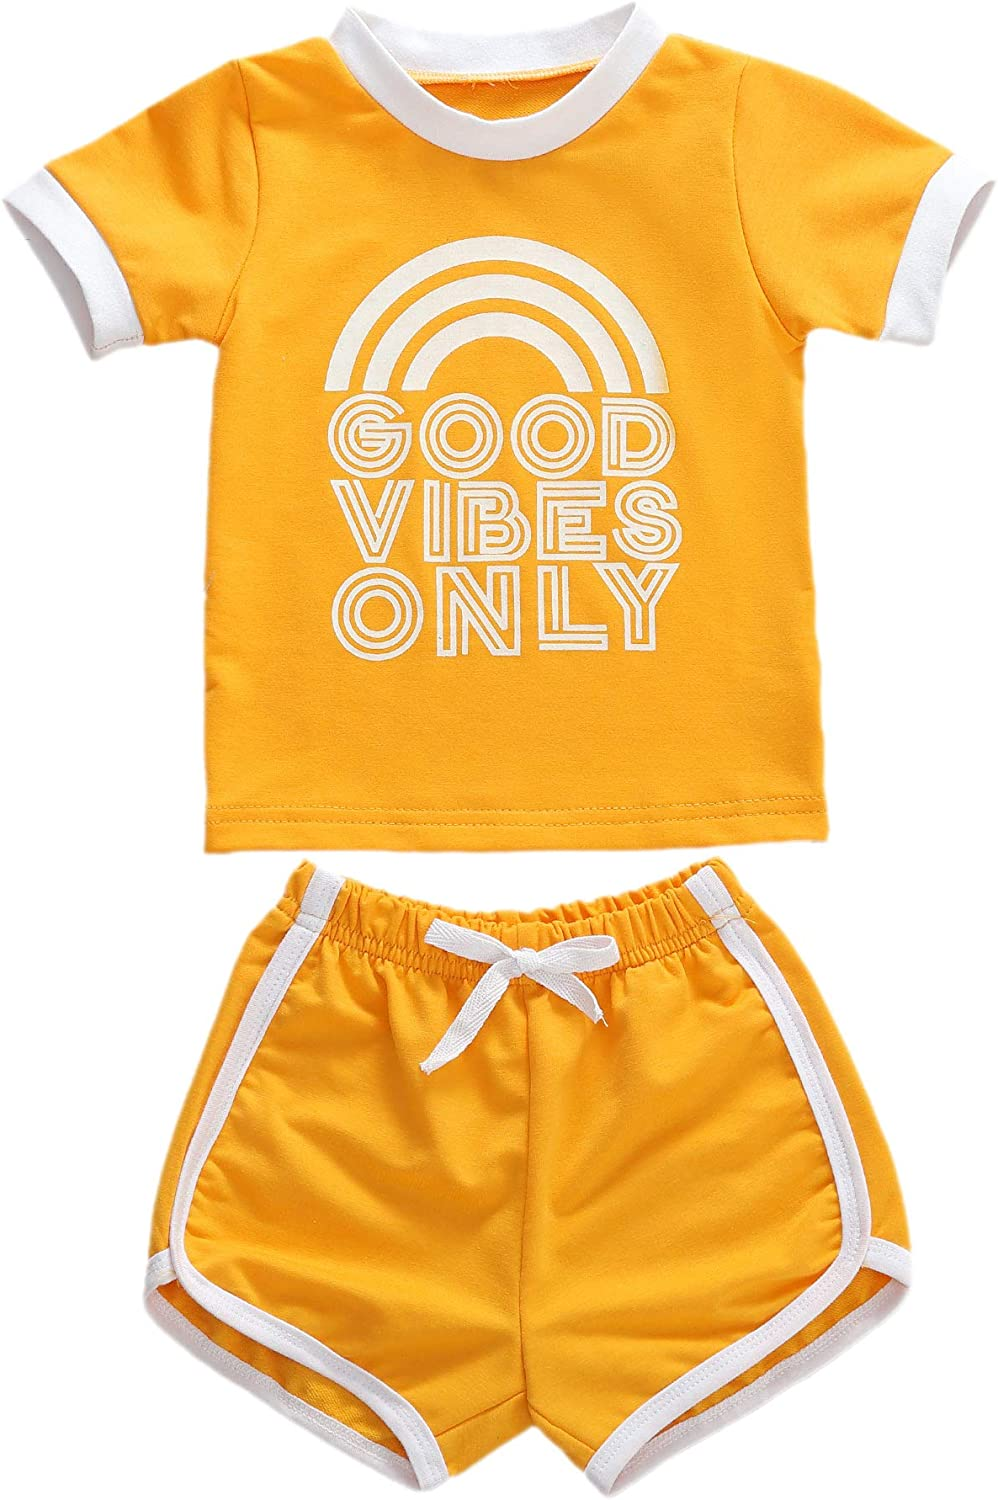 Toddler Baby Girls Sports Clothes Luxury goods Sleeve Ta Max 51% OFF Short Cotton T-Shirt